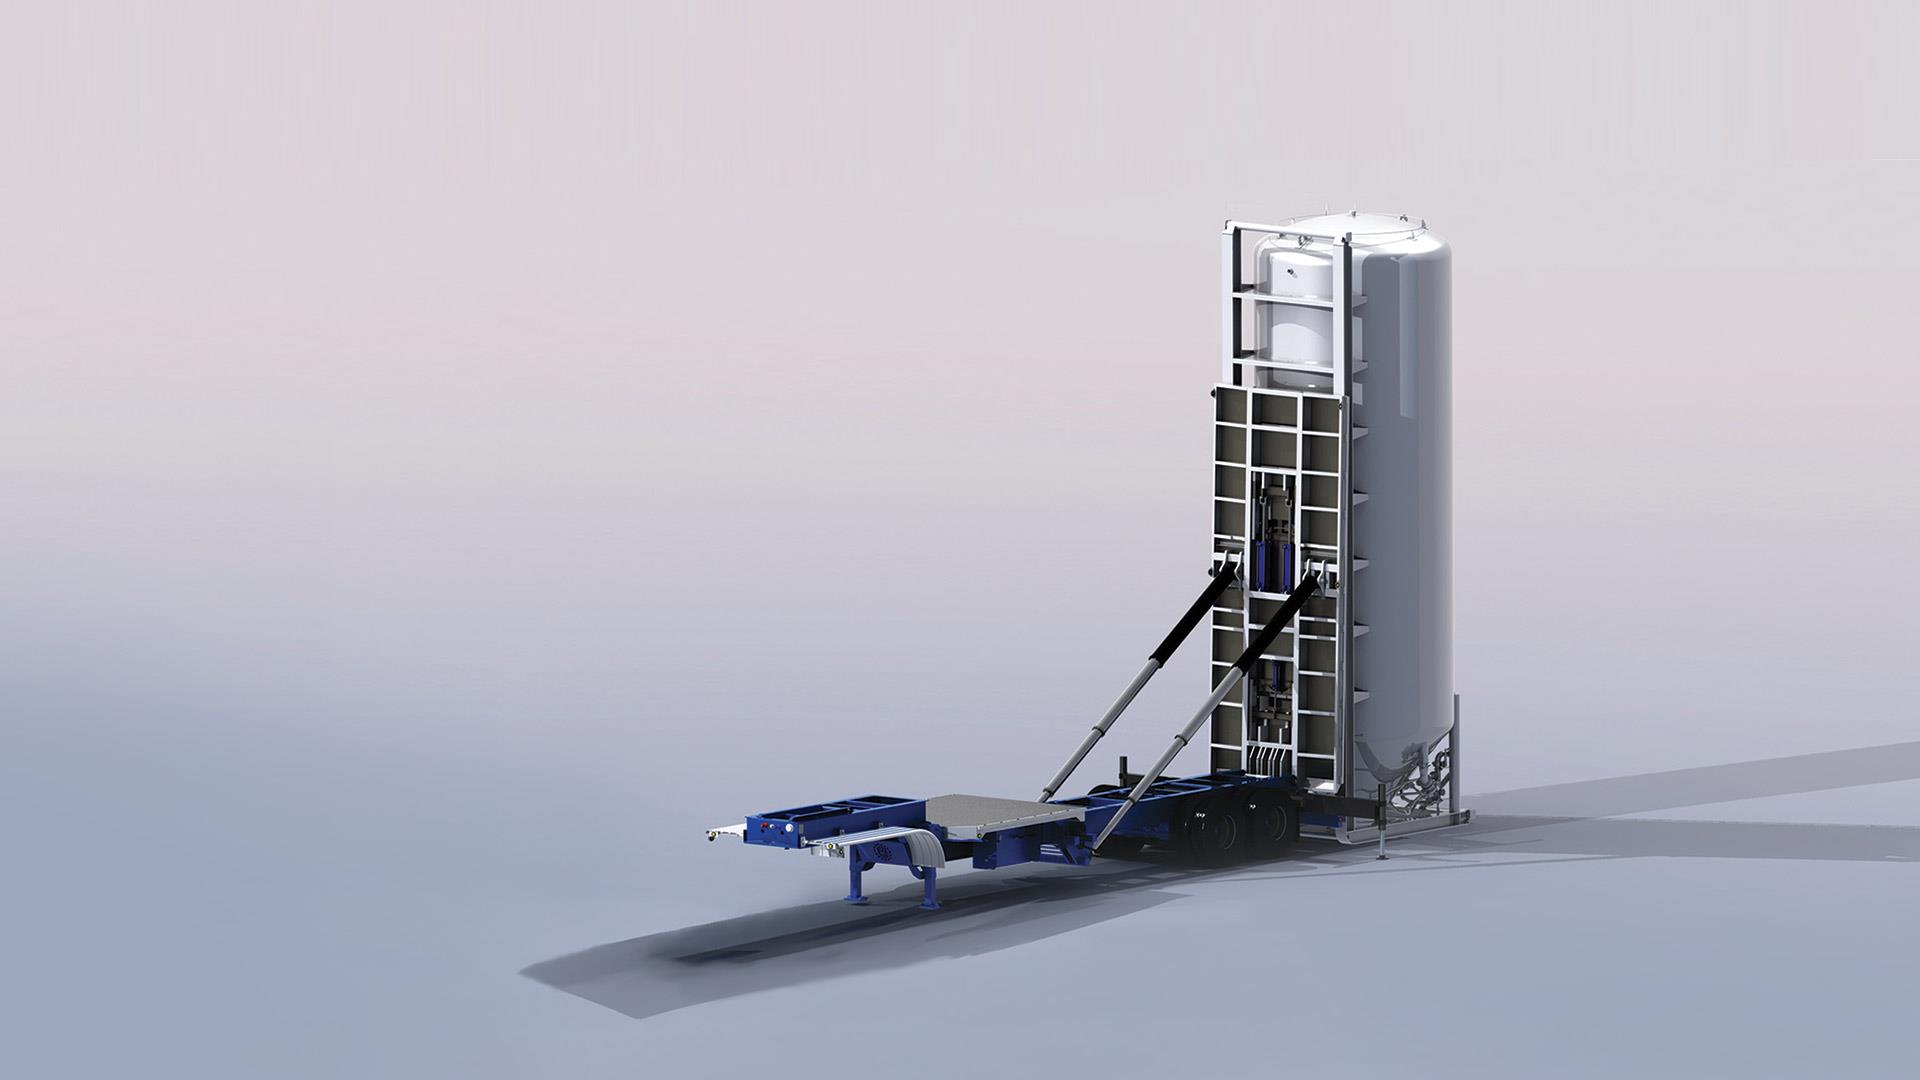 Render of Silo Setter Trailer